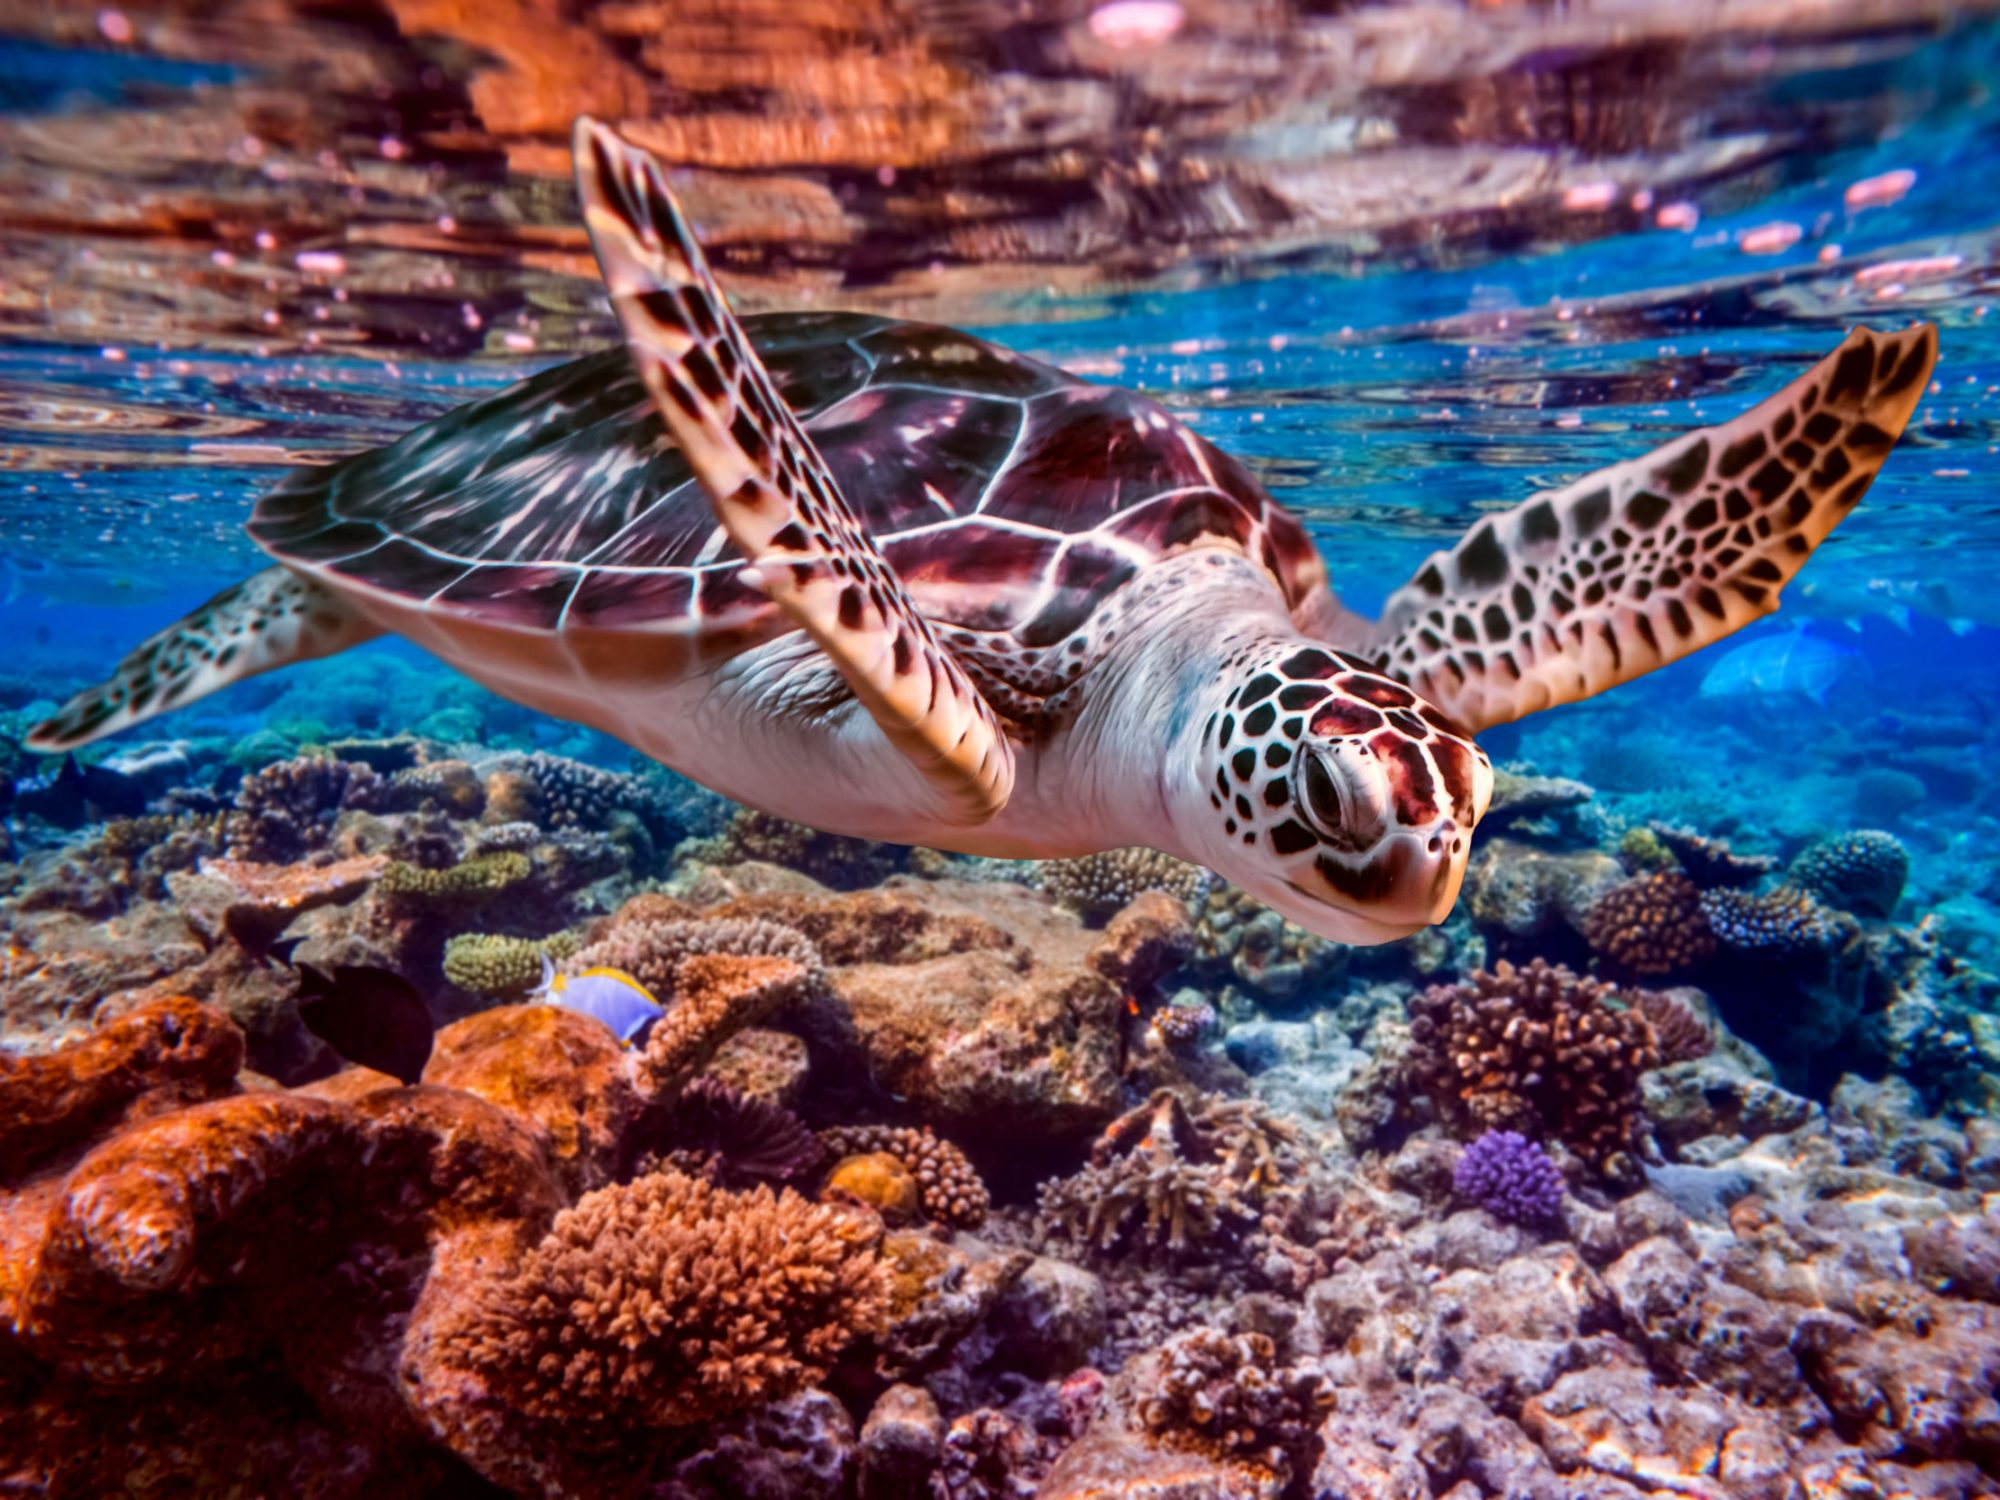 A sea turtle swims under water in a tropical sea